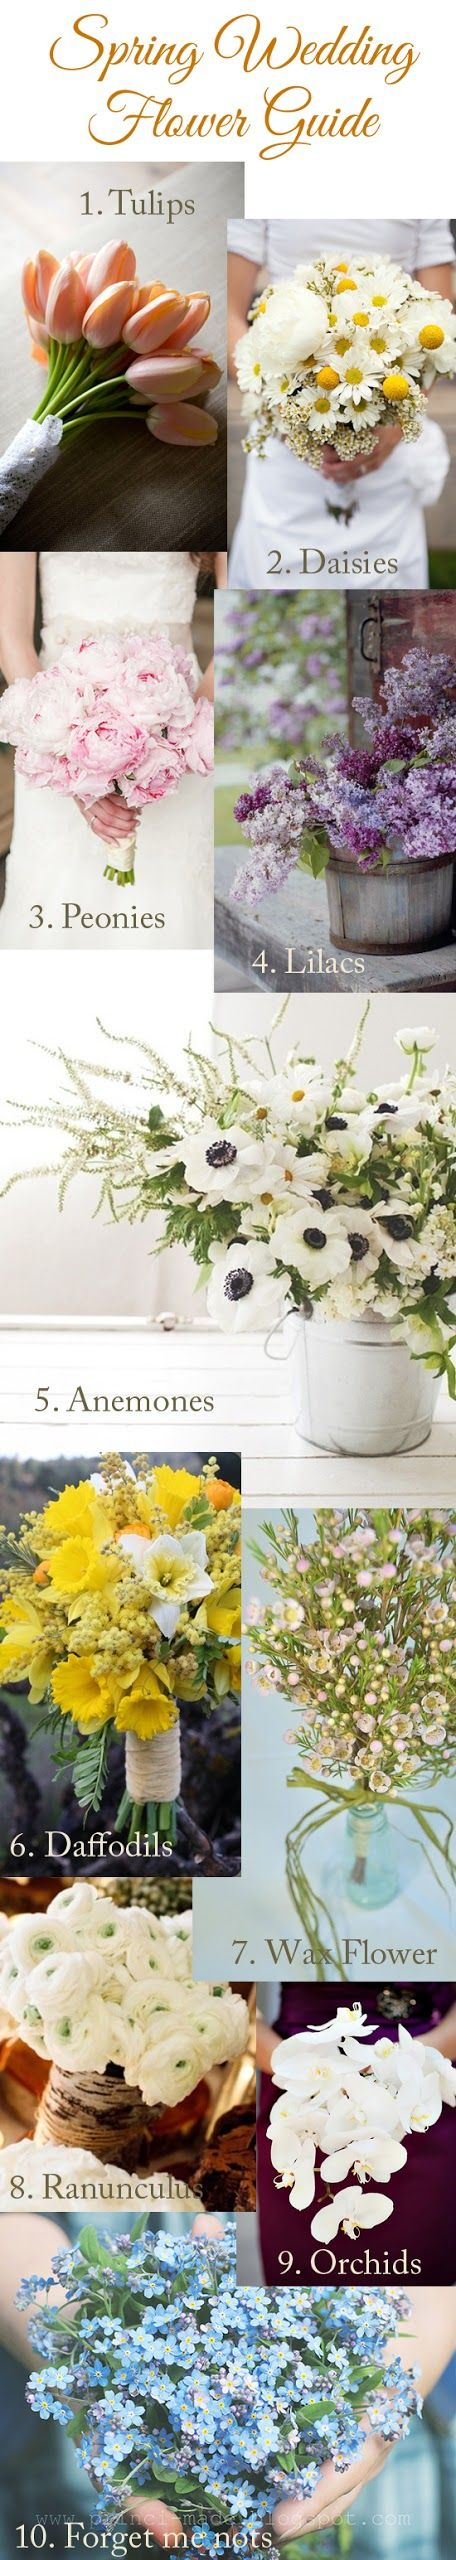 Getting married this spring? here's a a quick guide on blooms that are found during the season.